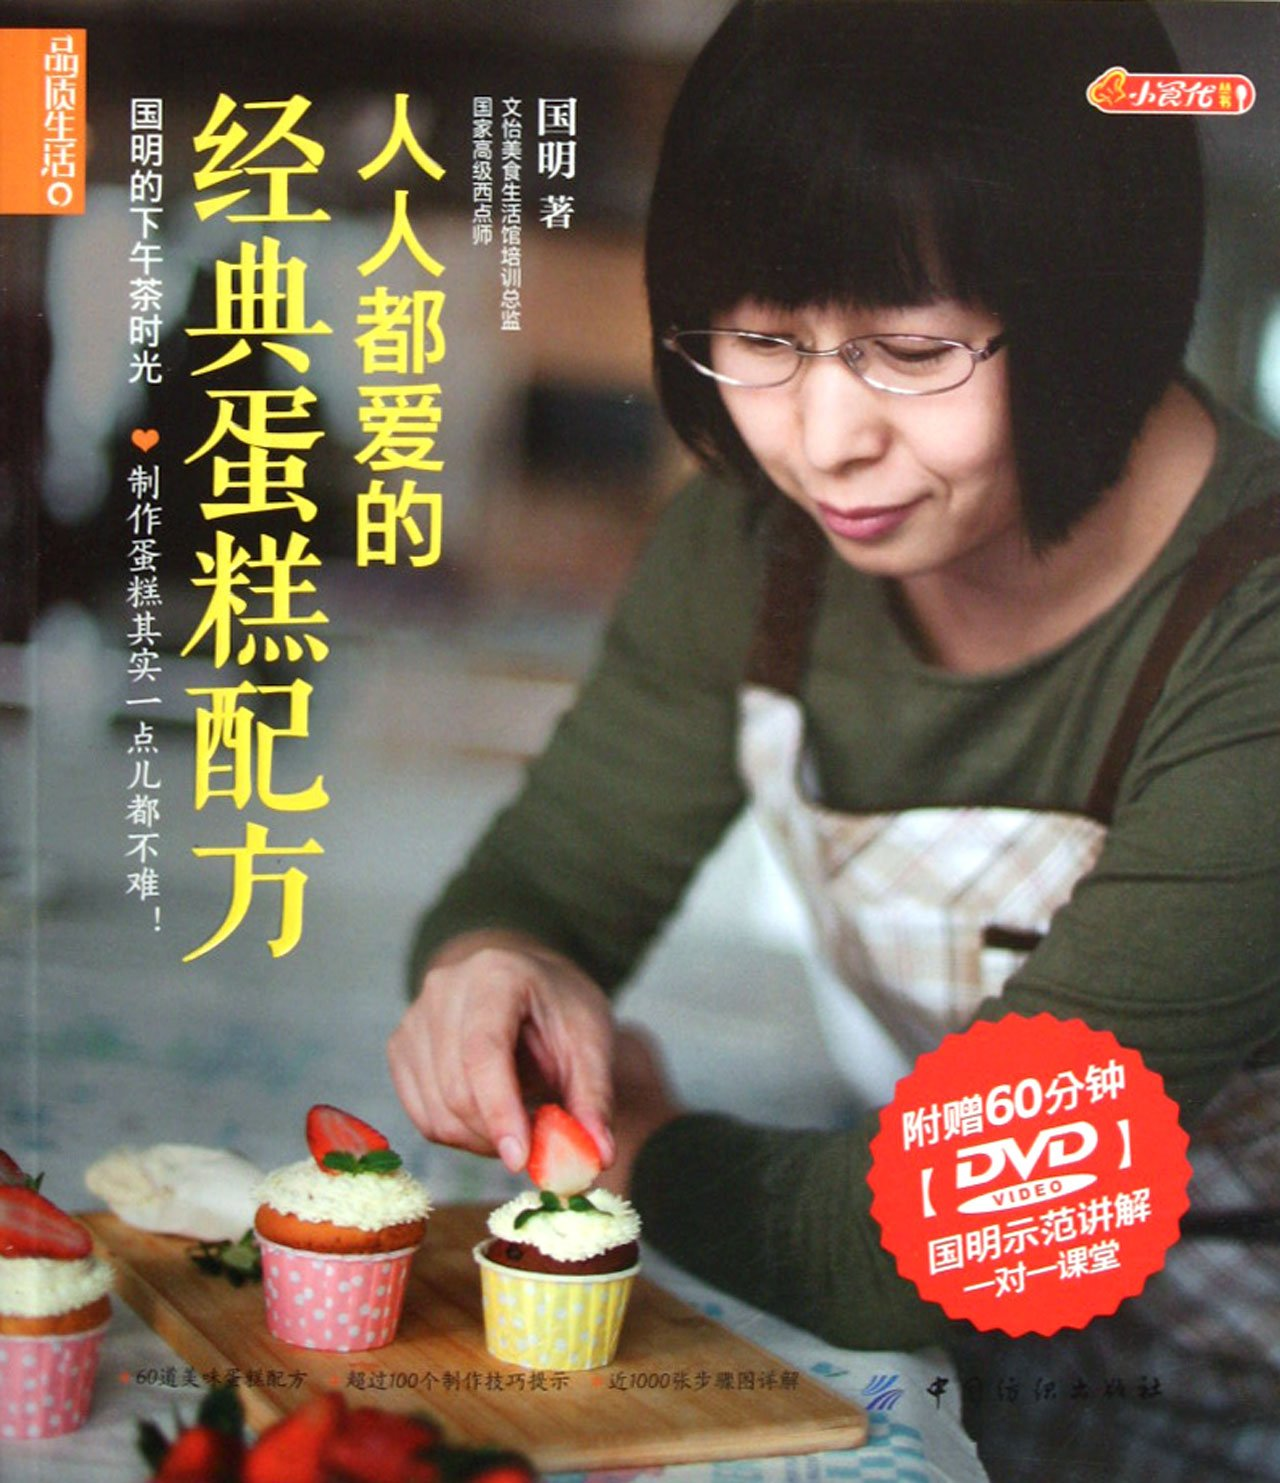 We Love Classical Cake RecipesAttaching a Piece of DVD (Chinese Edition) ebook